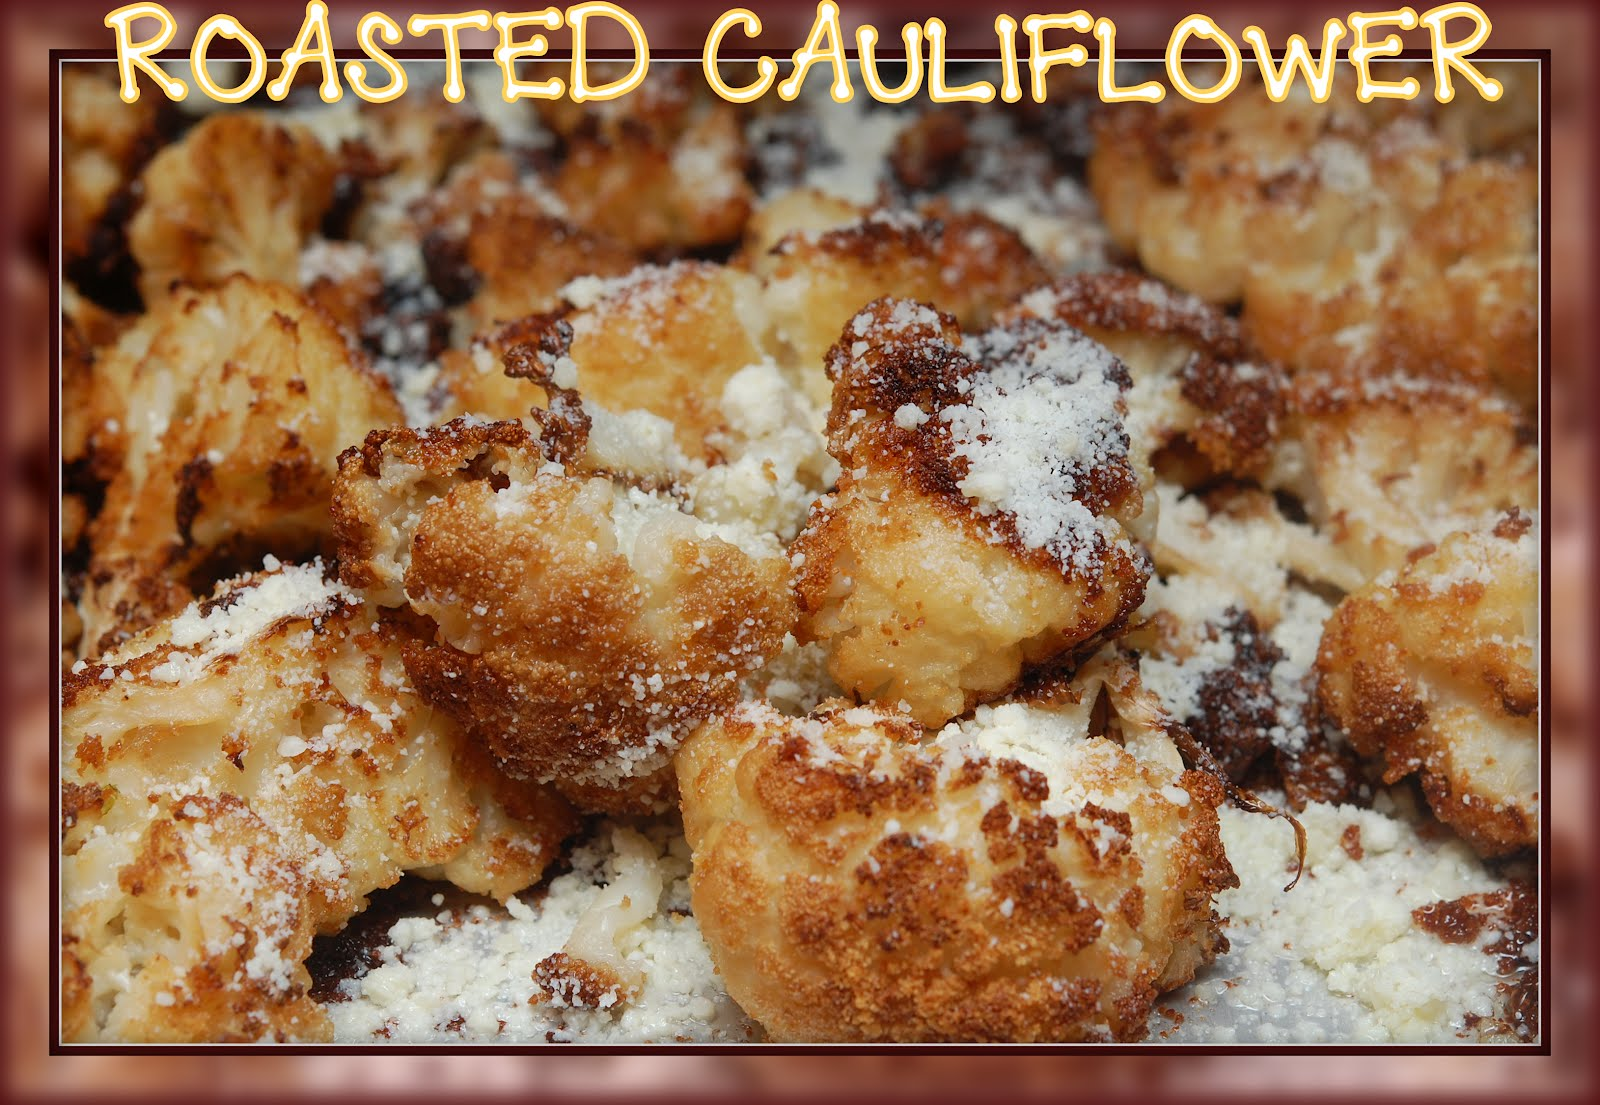 Roasted Cauliflower With Anchovy Bread Crumbs Recipes — Dishmaps